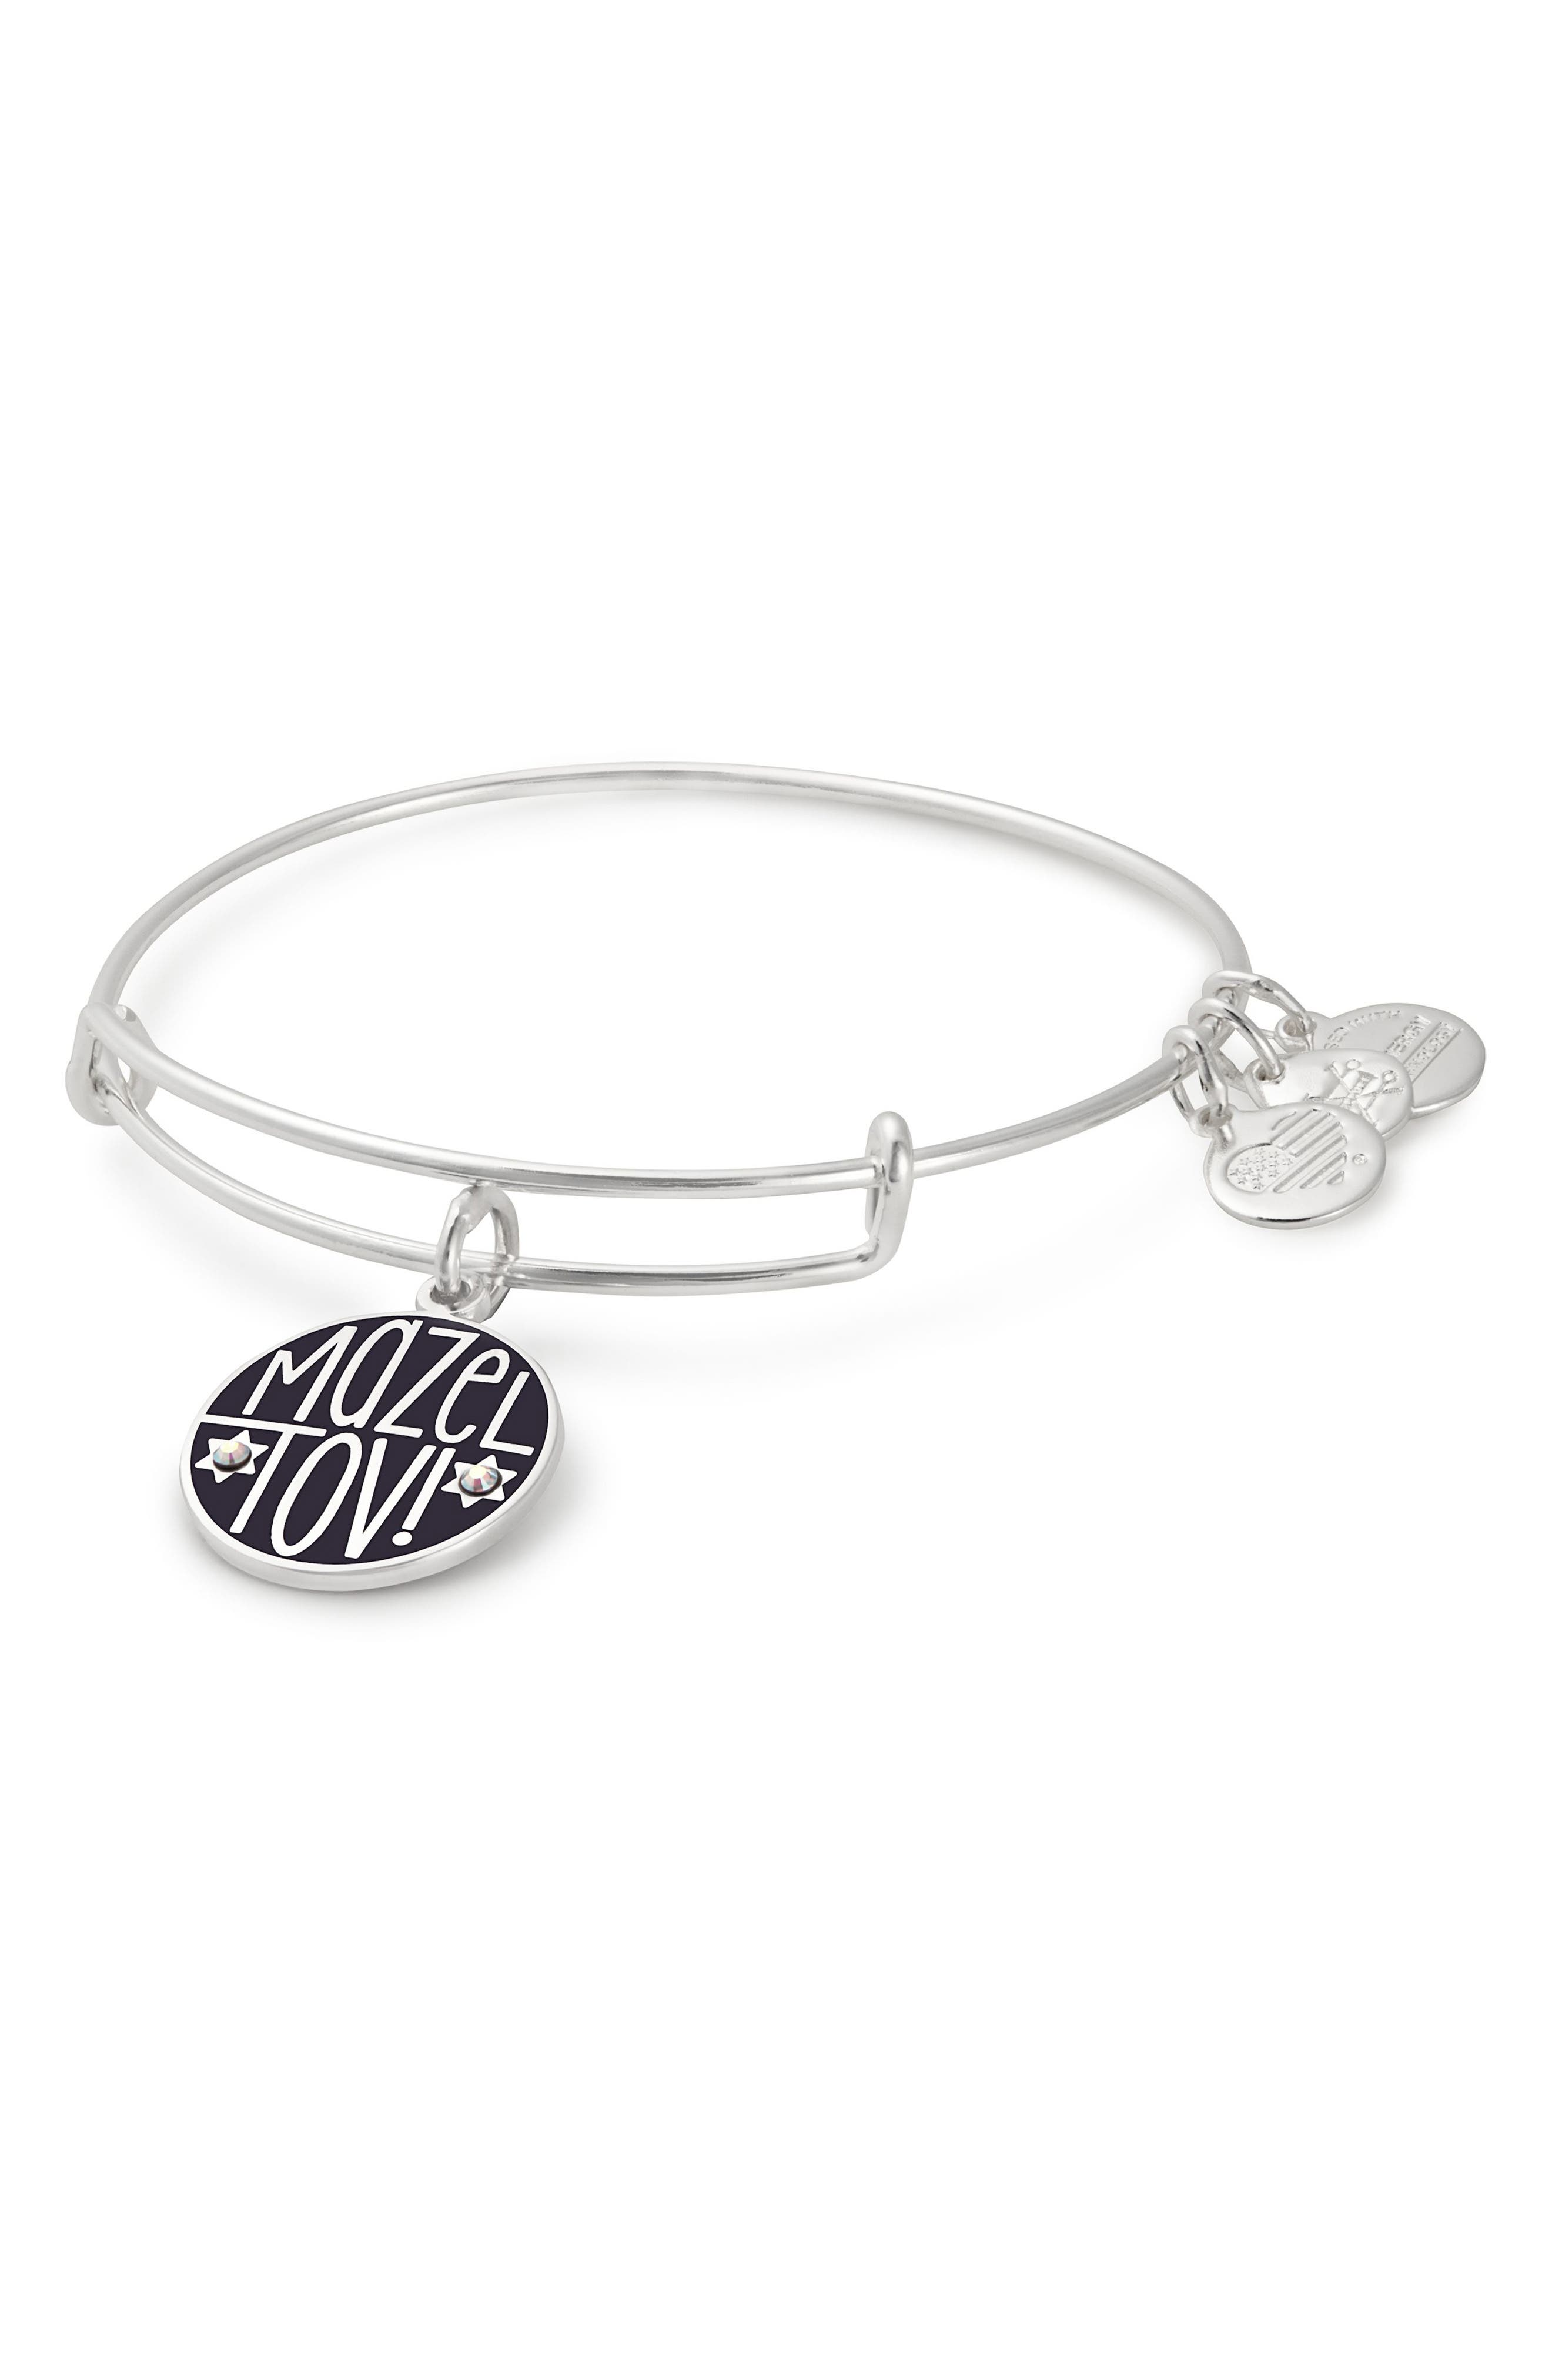 ALEX AND ANI Mazel Tov Charm Bangle in Silver